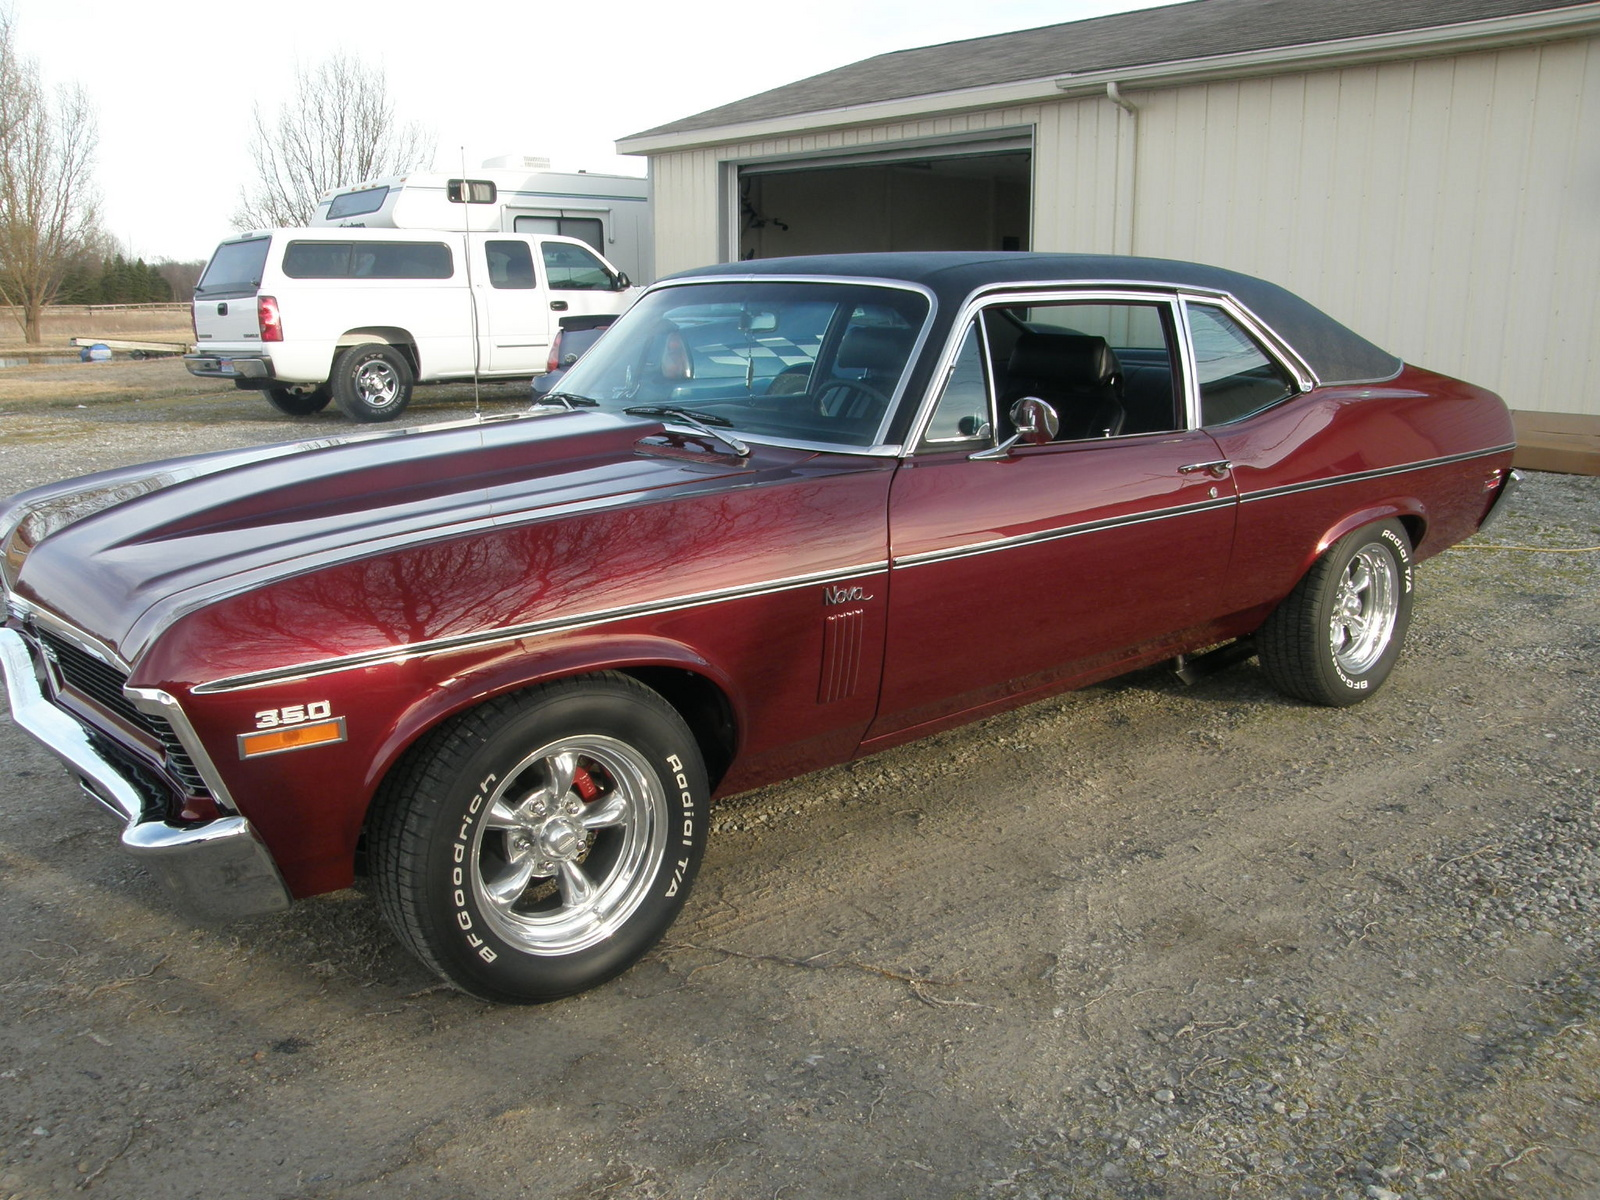 1970 Chevy Nova For Sale Craigslist | Autos Post